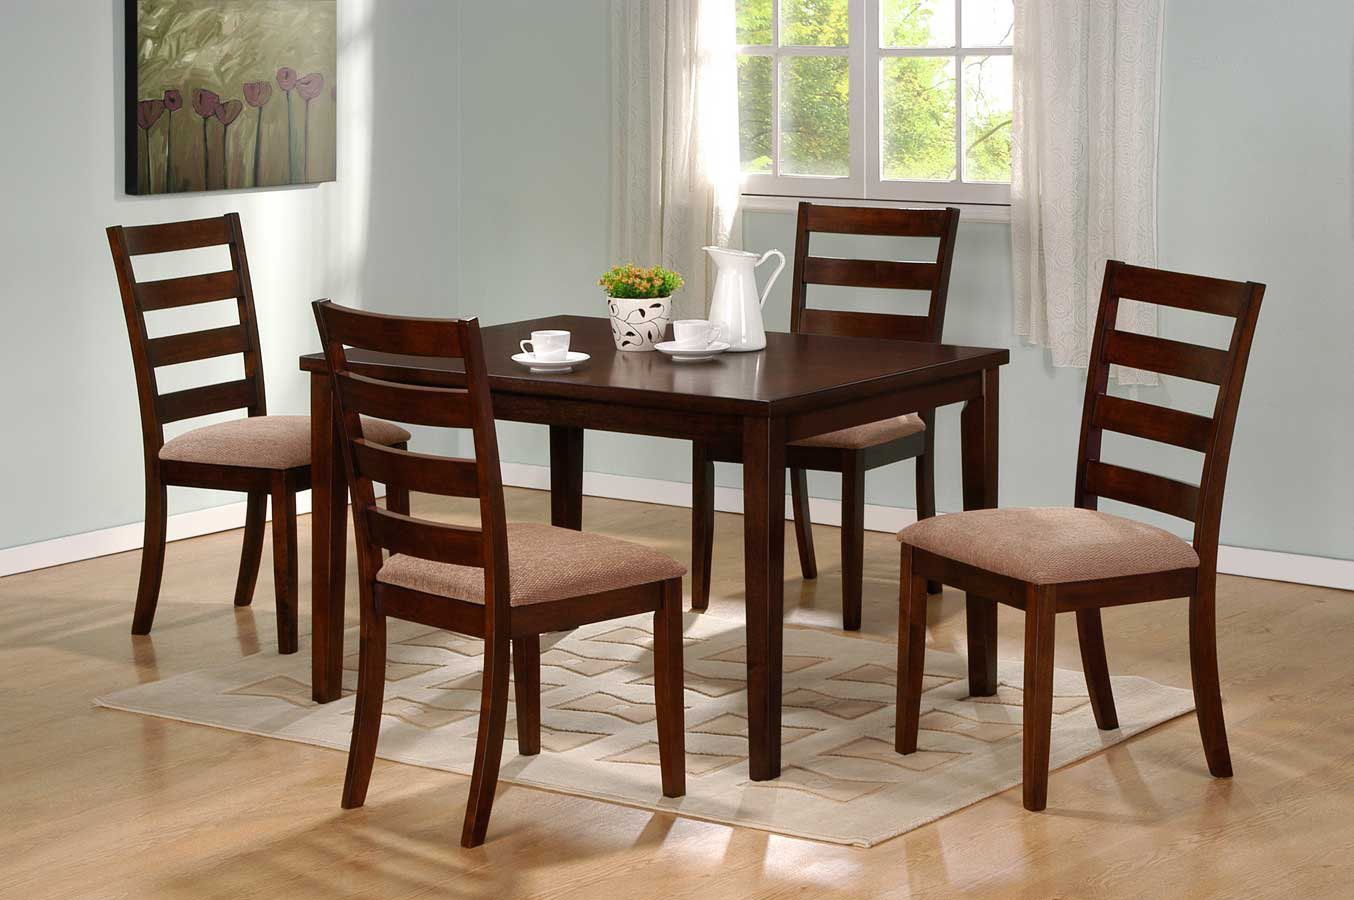 Awesome piece dining set fantastic furniture dining table ideas